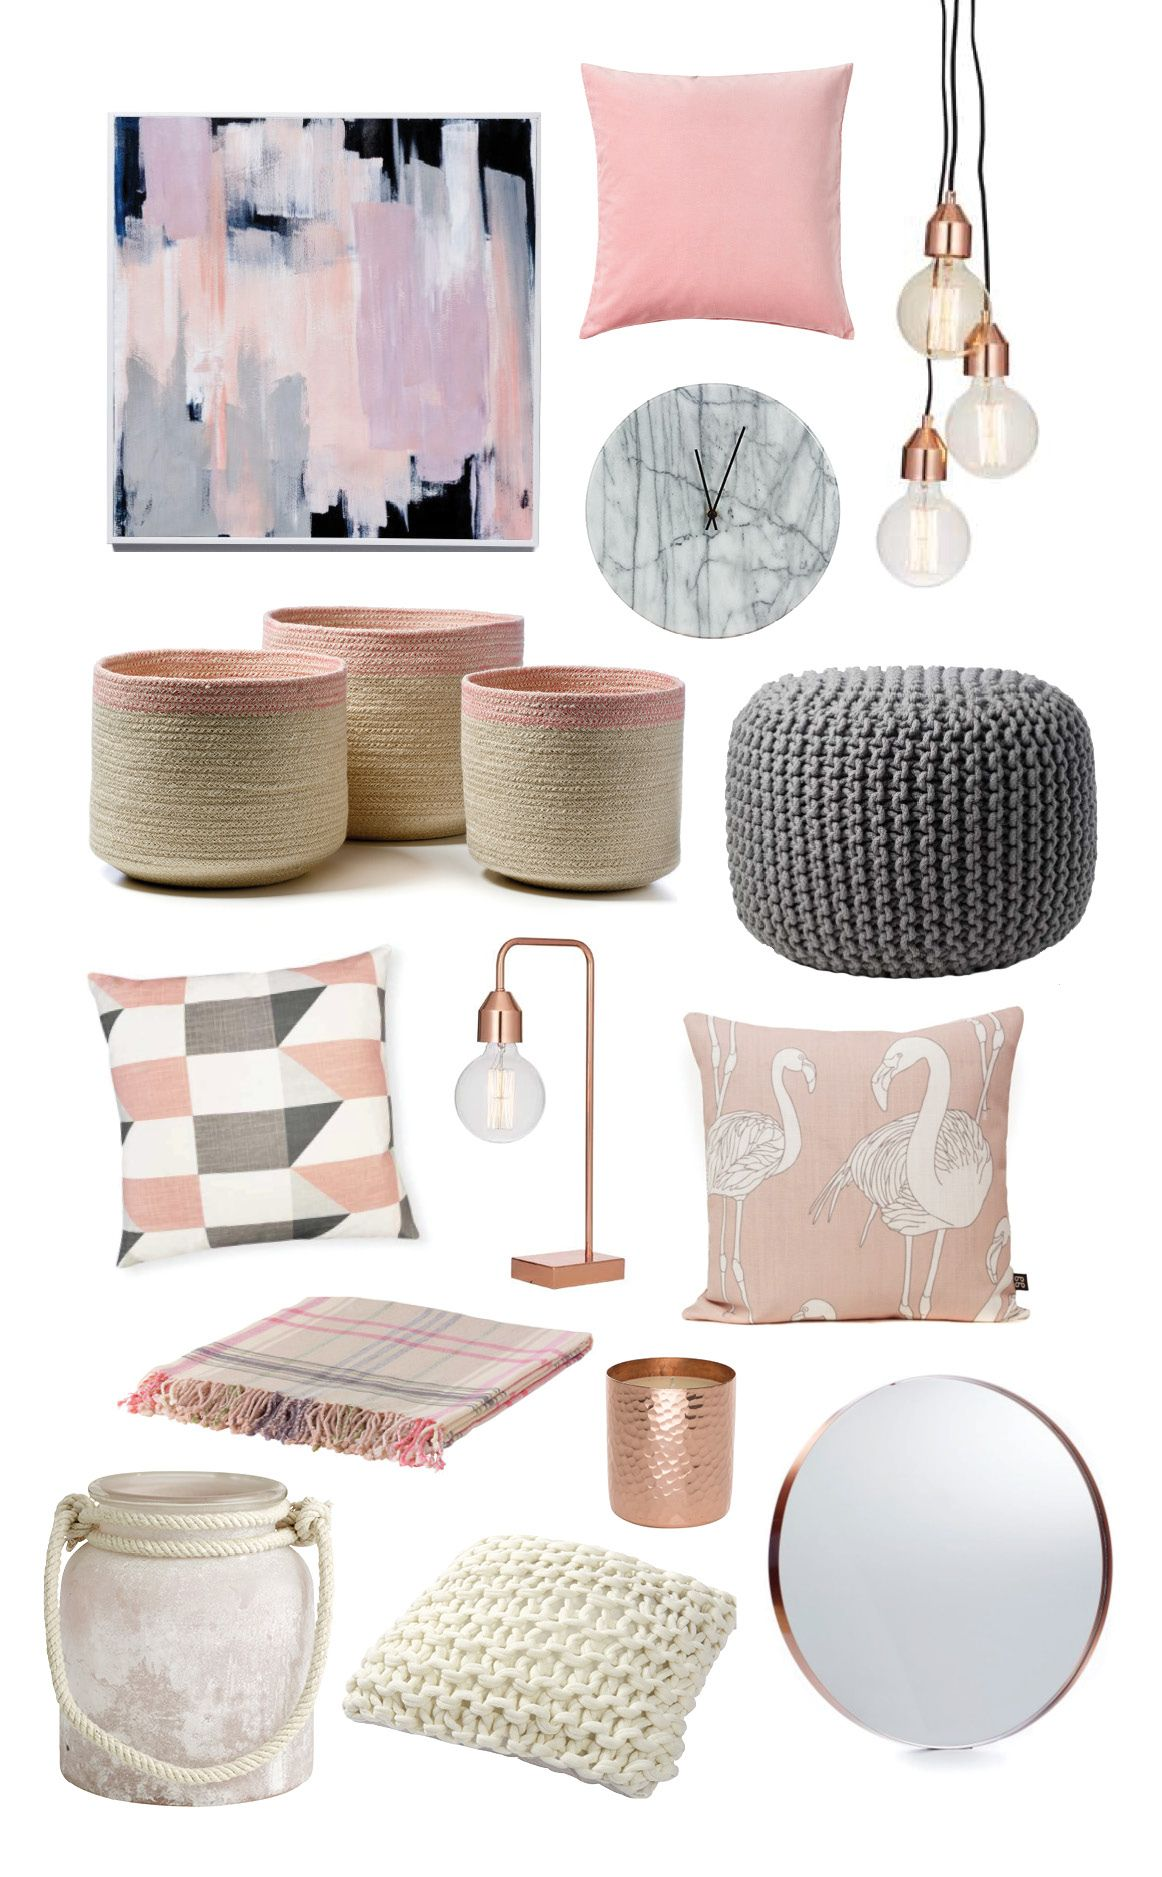 Trending items blush pink click through for stockists for Bedroom decor and accessories